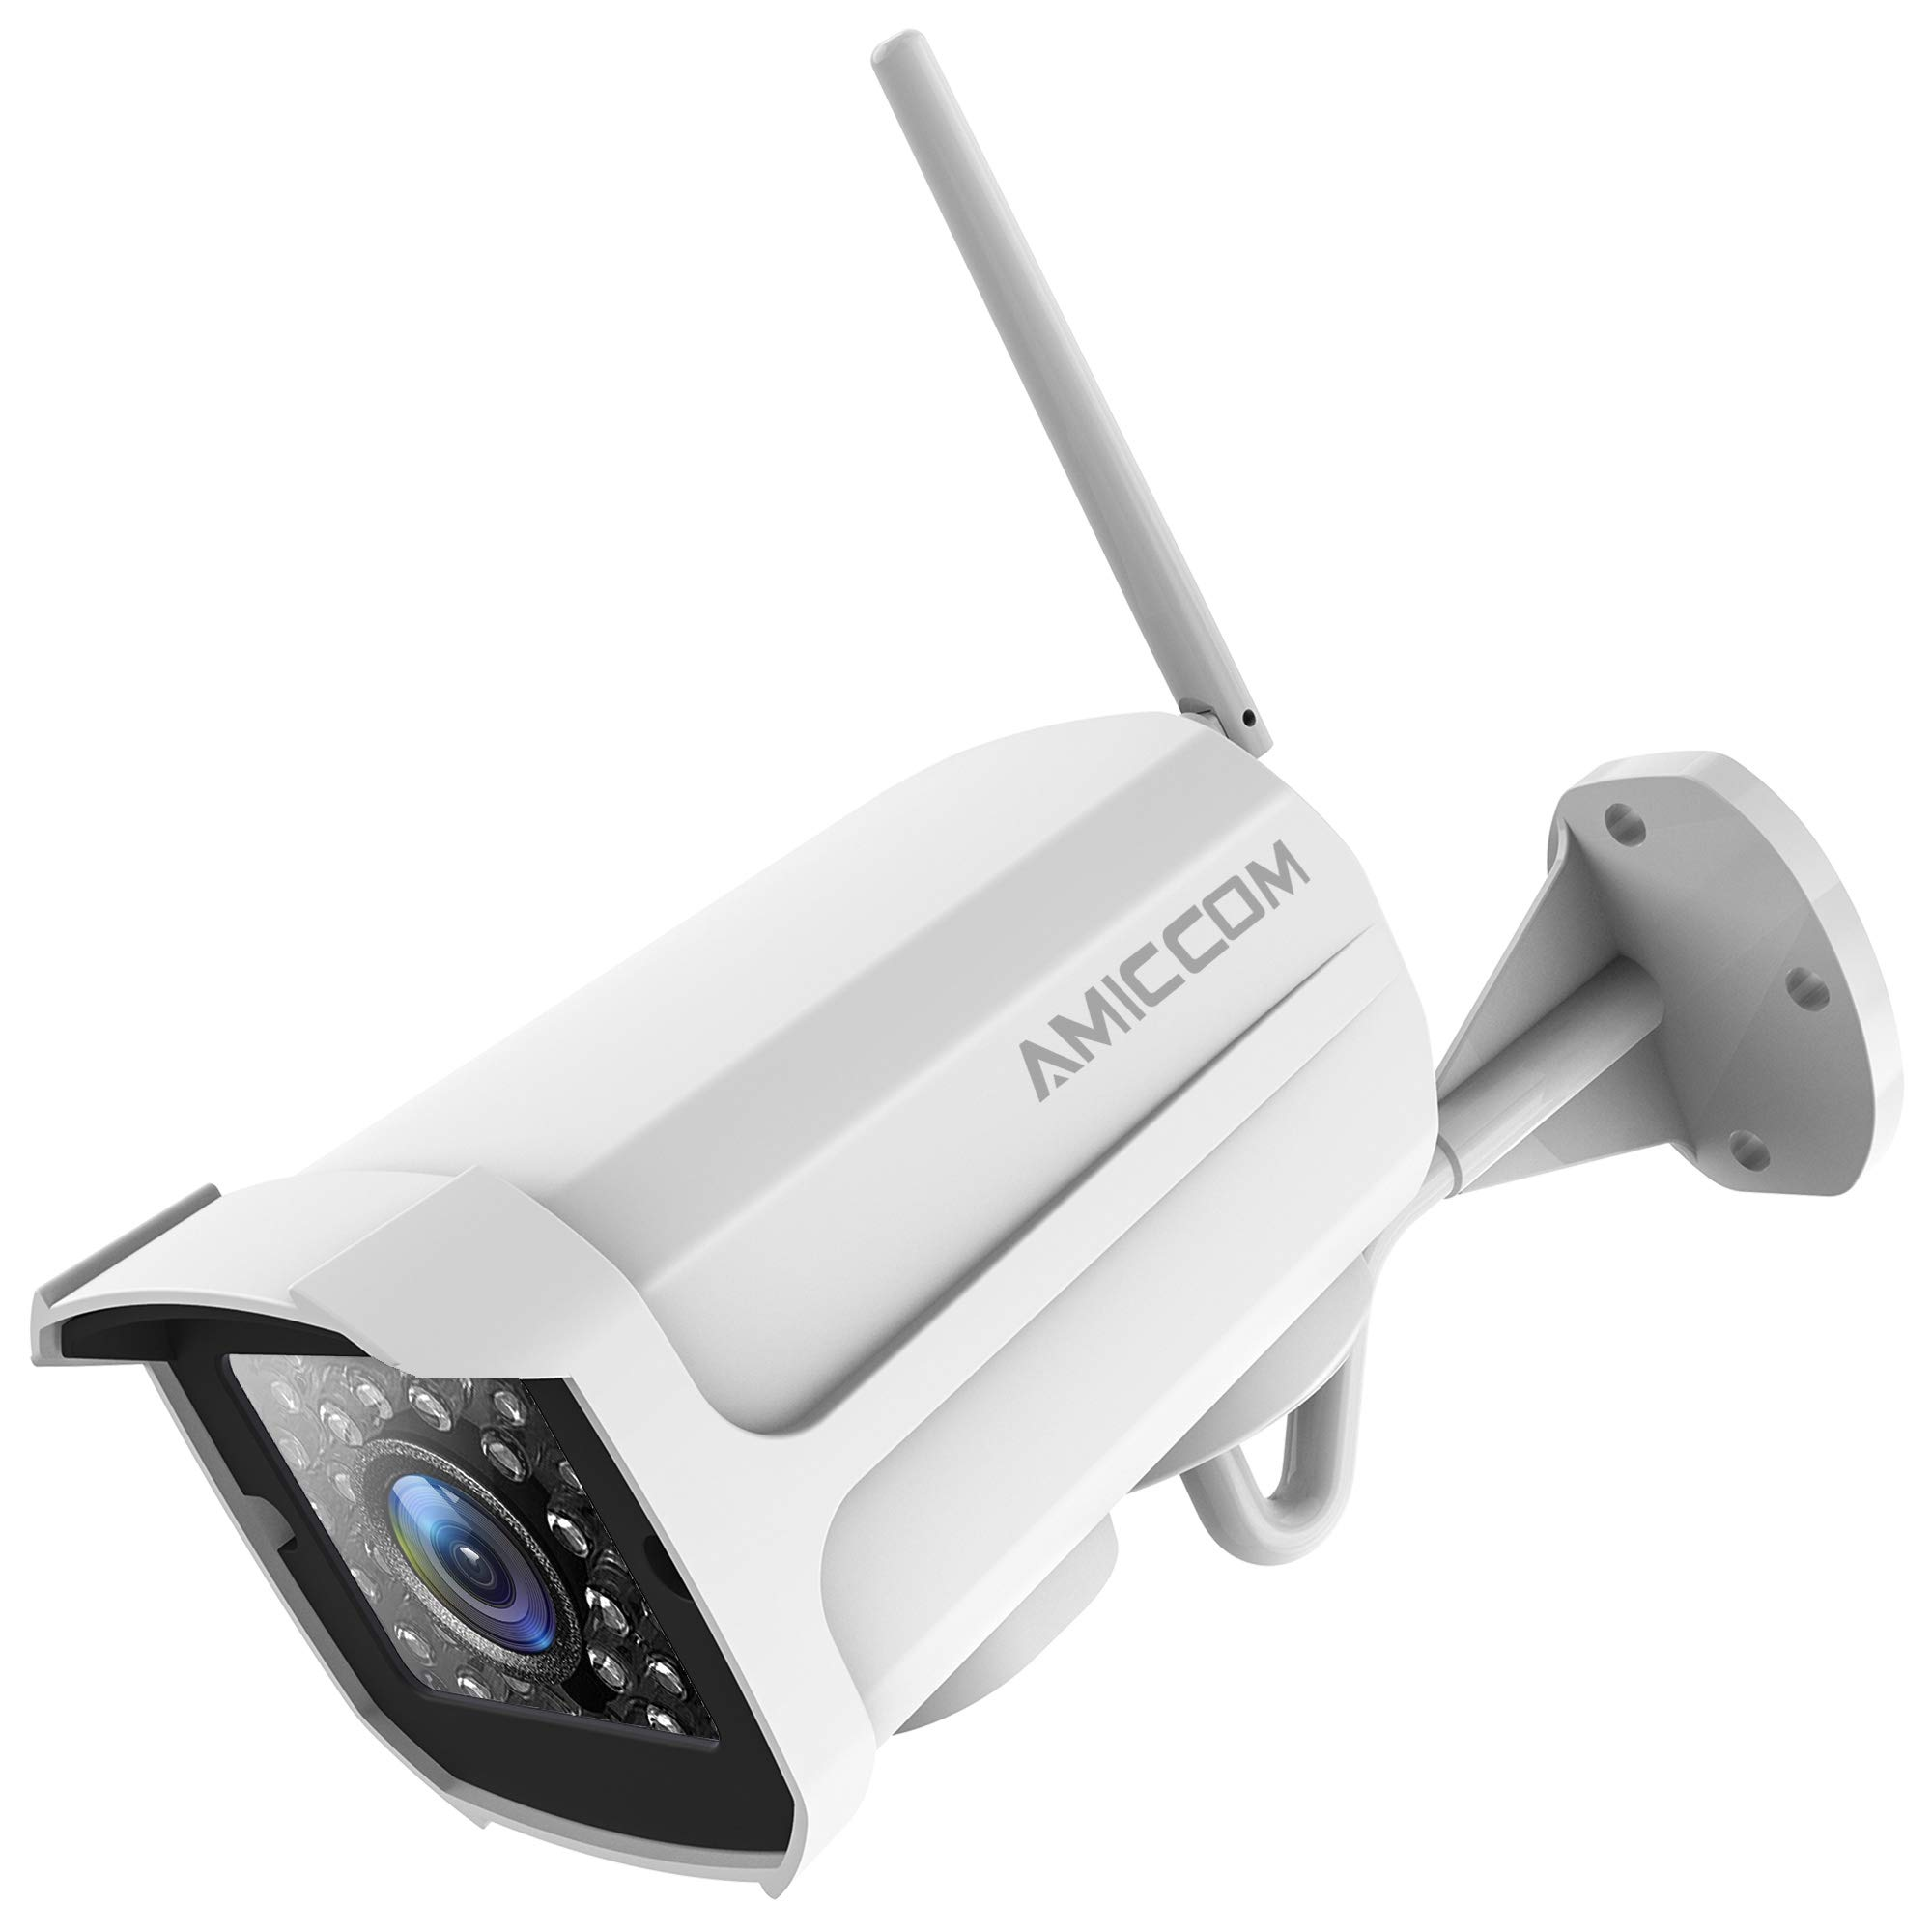 Outdoor Security Camera, 1080P WiFi Camera Surveillance Cameras, IP Camera with Two-Way Audio, IP66 Waterproof, Night Vision, Motion Detection, Activity Alert, Deterrent Alarm - iOS, Android